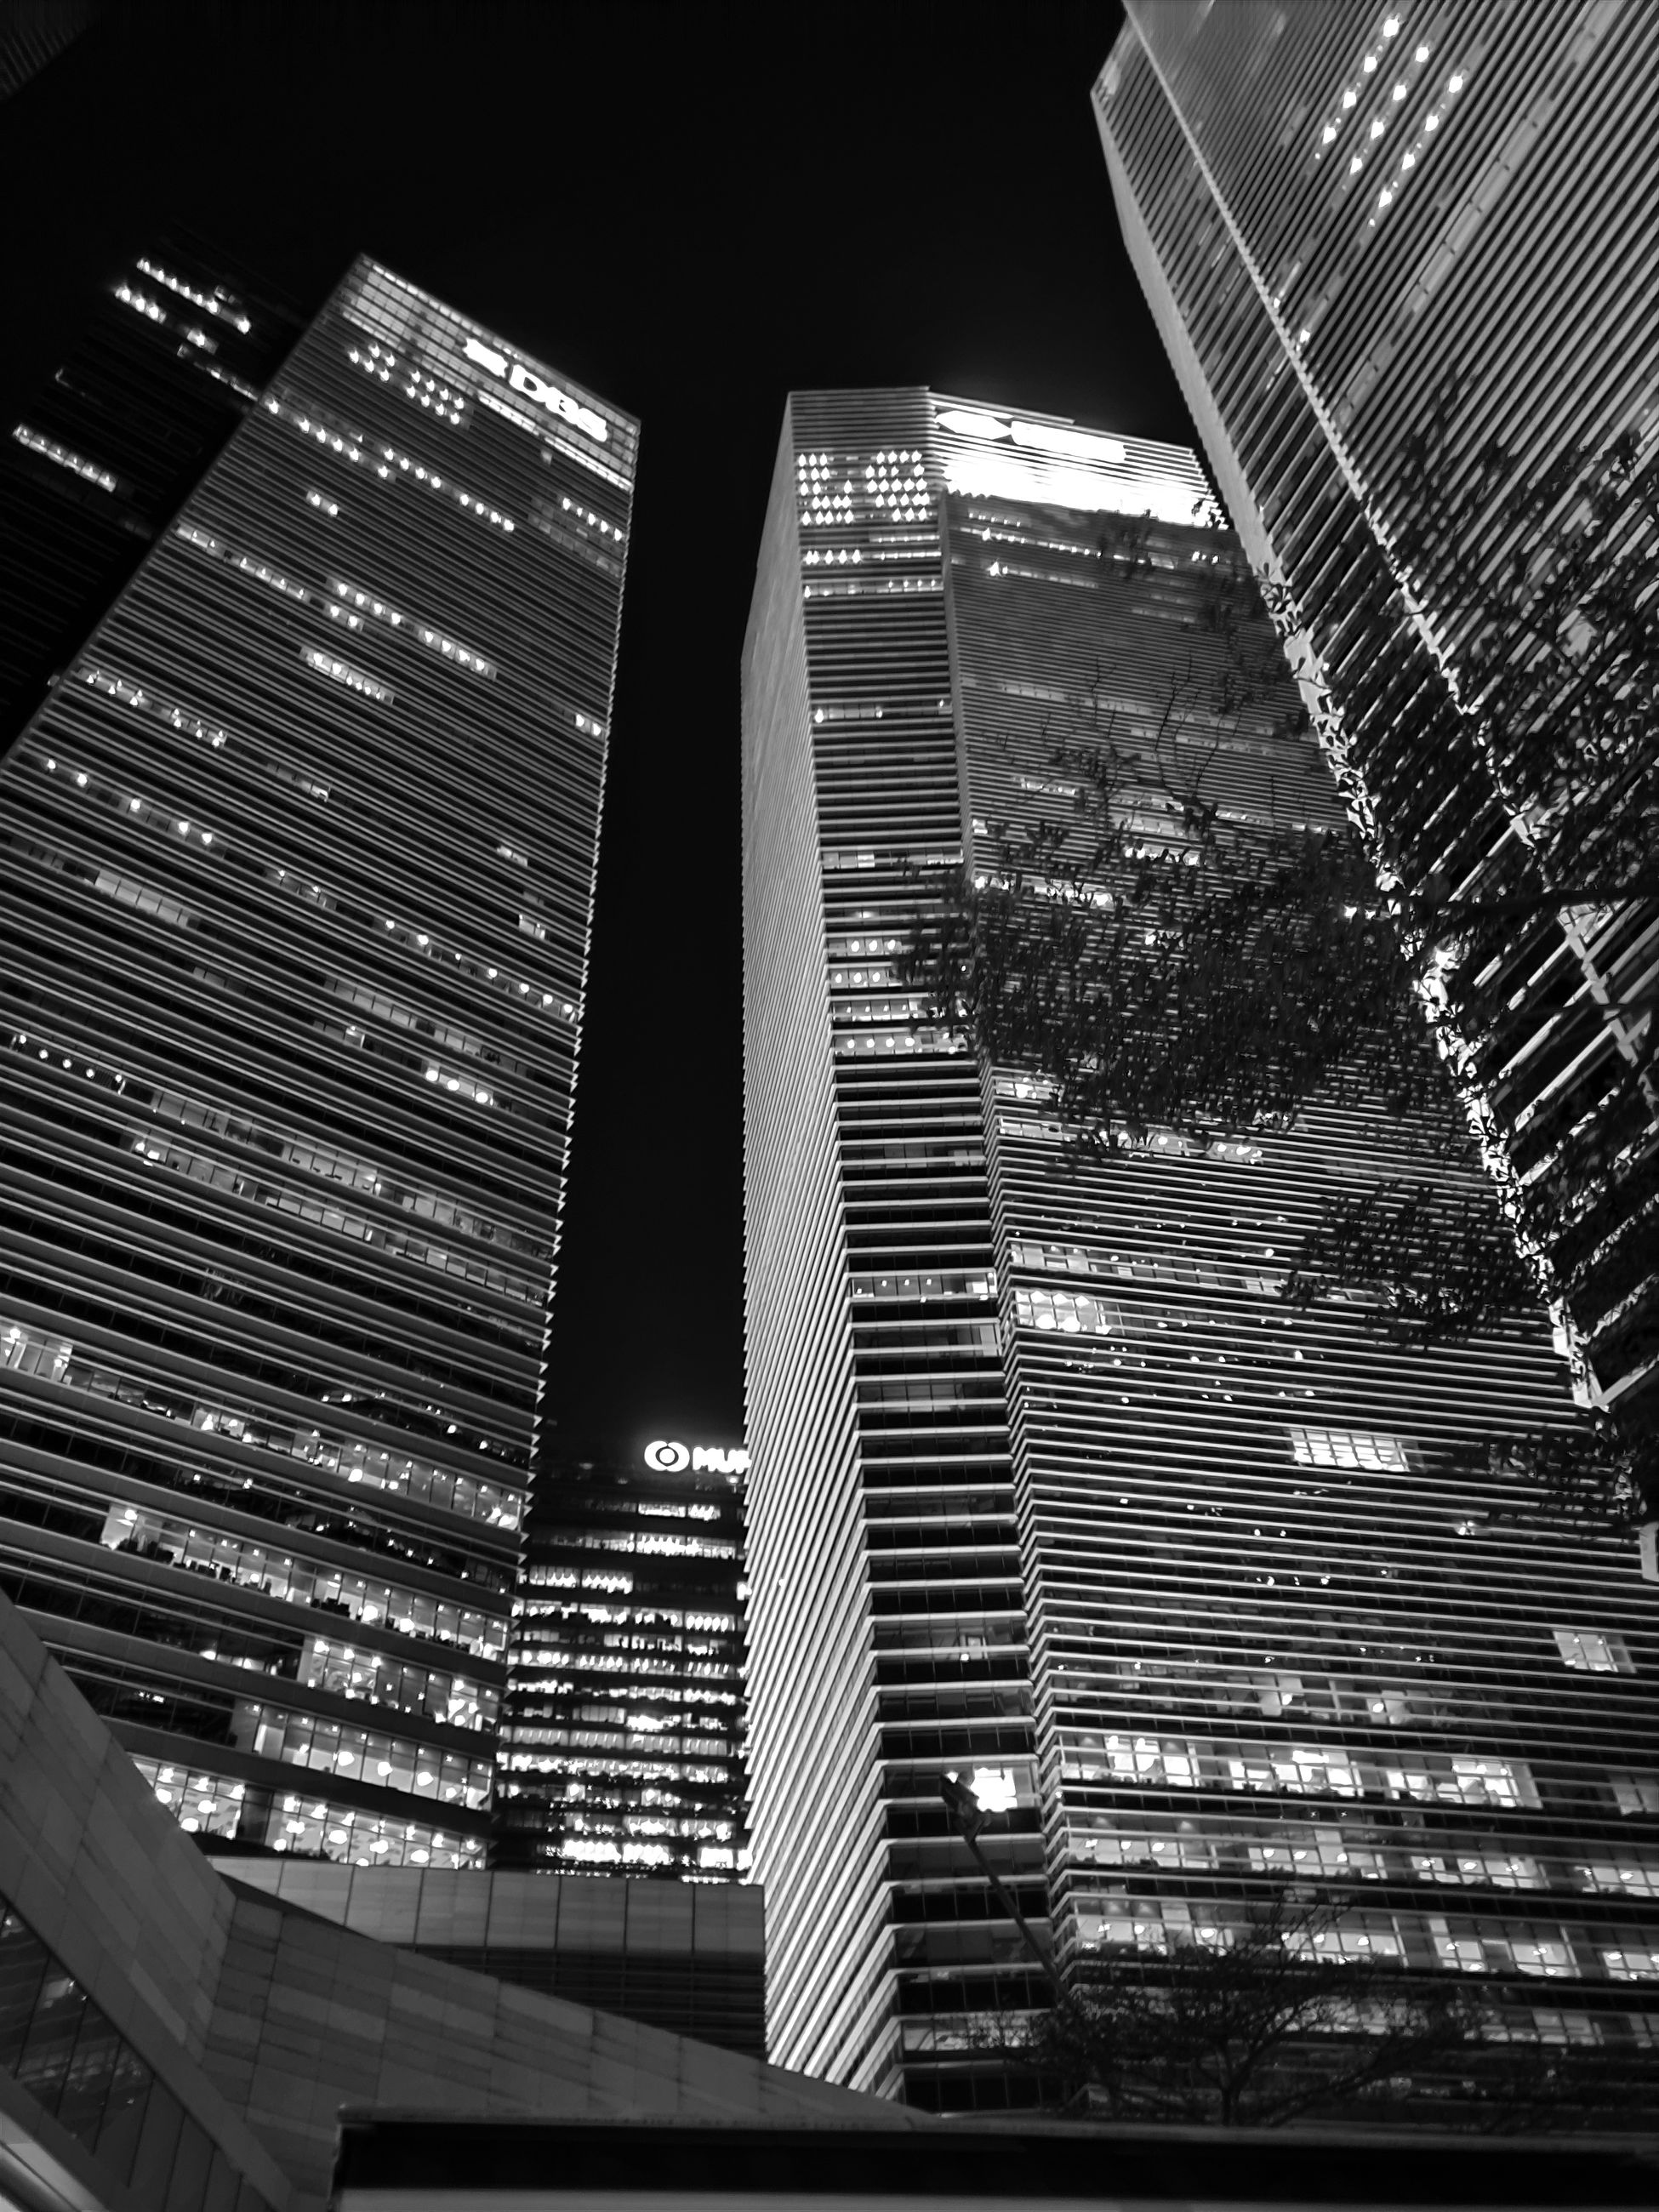 building exterior, architecture, built structure, city, building, office building exterior, tall - high, office, modern, skyscraper, tower, low angle view, illuminated, no people, night, nature, sky, financial district, glass - material, outdoors, cityscape, glass